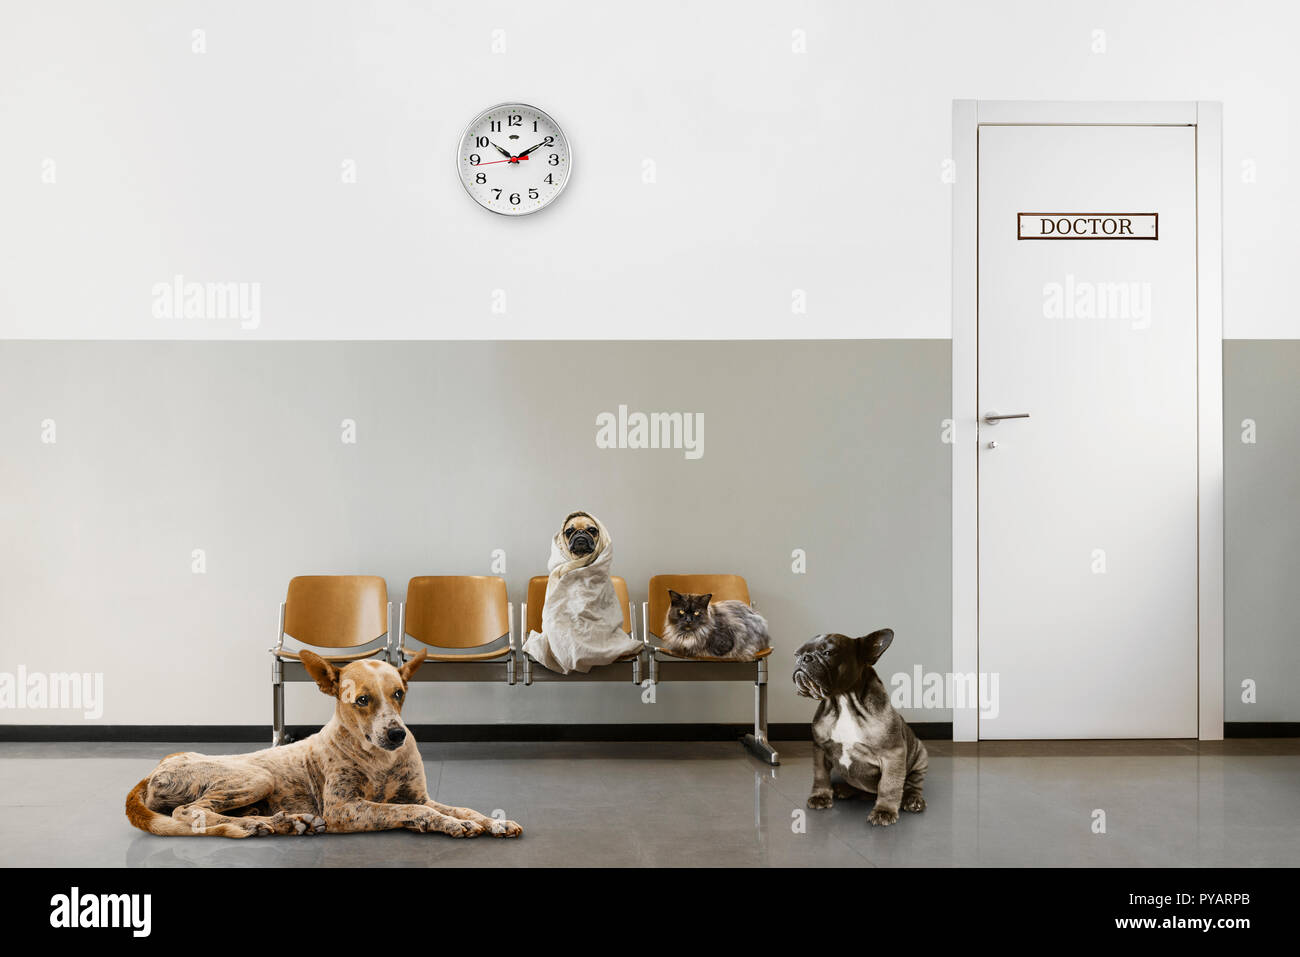 veterinary waiting room with chairs, clock, close door and group of sitting animals - Stock Image